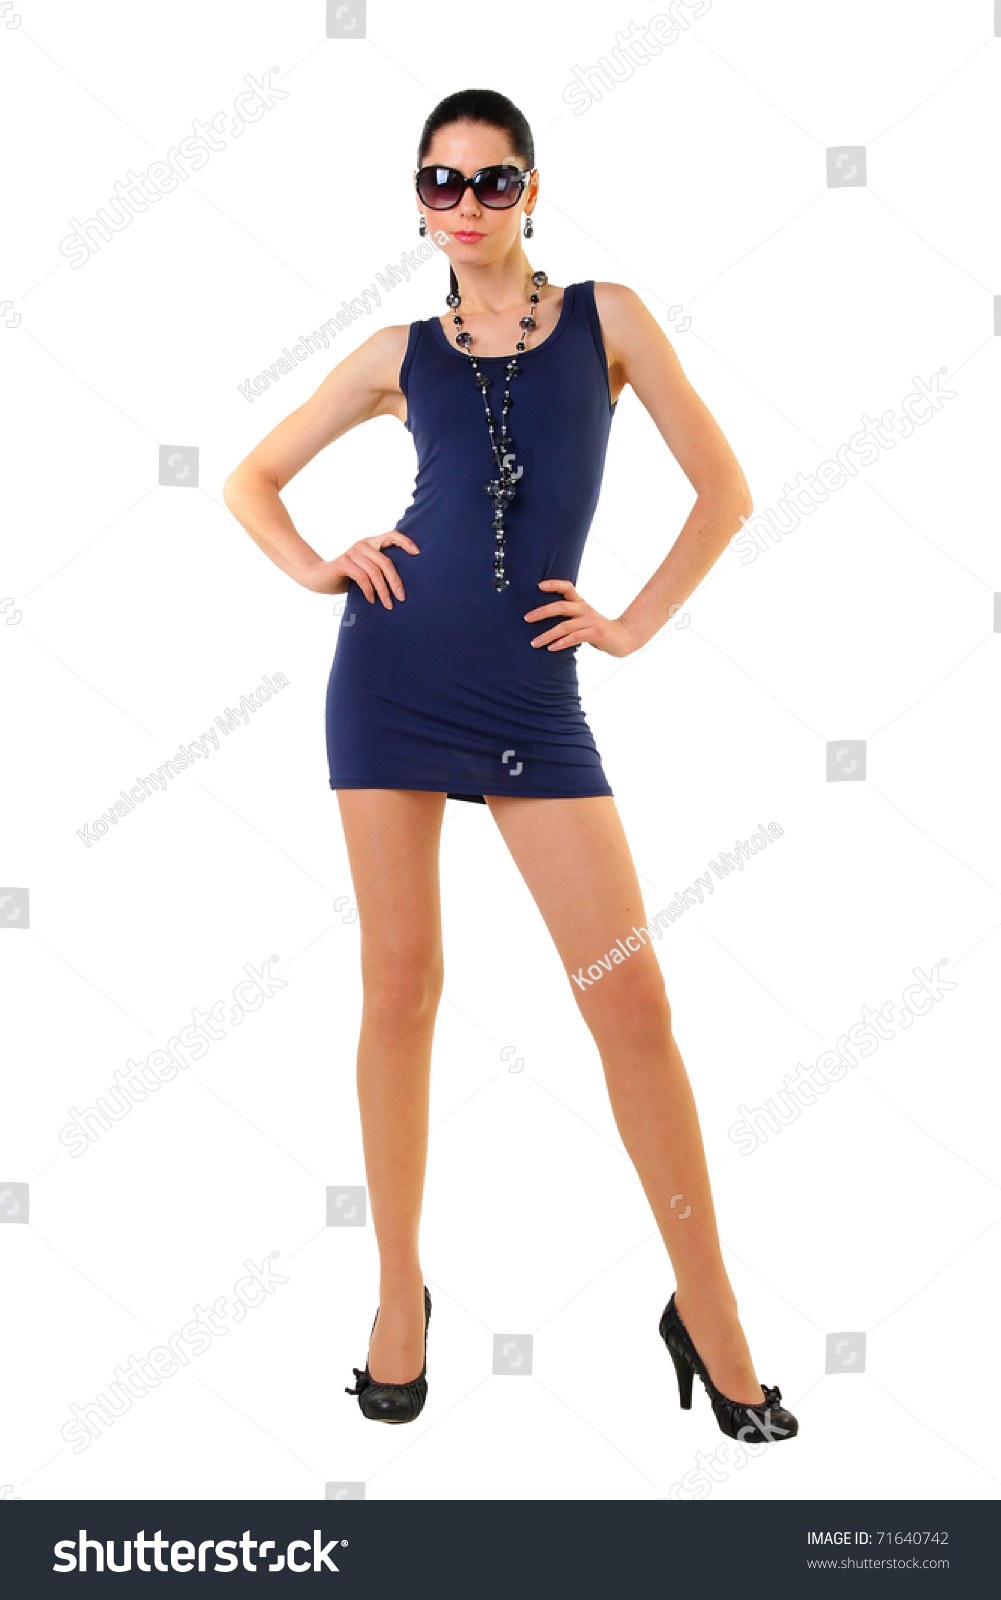 Thelongleggedstyleblogger: Sexy Fashion Model With Long Legs Posing On The Isolated